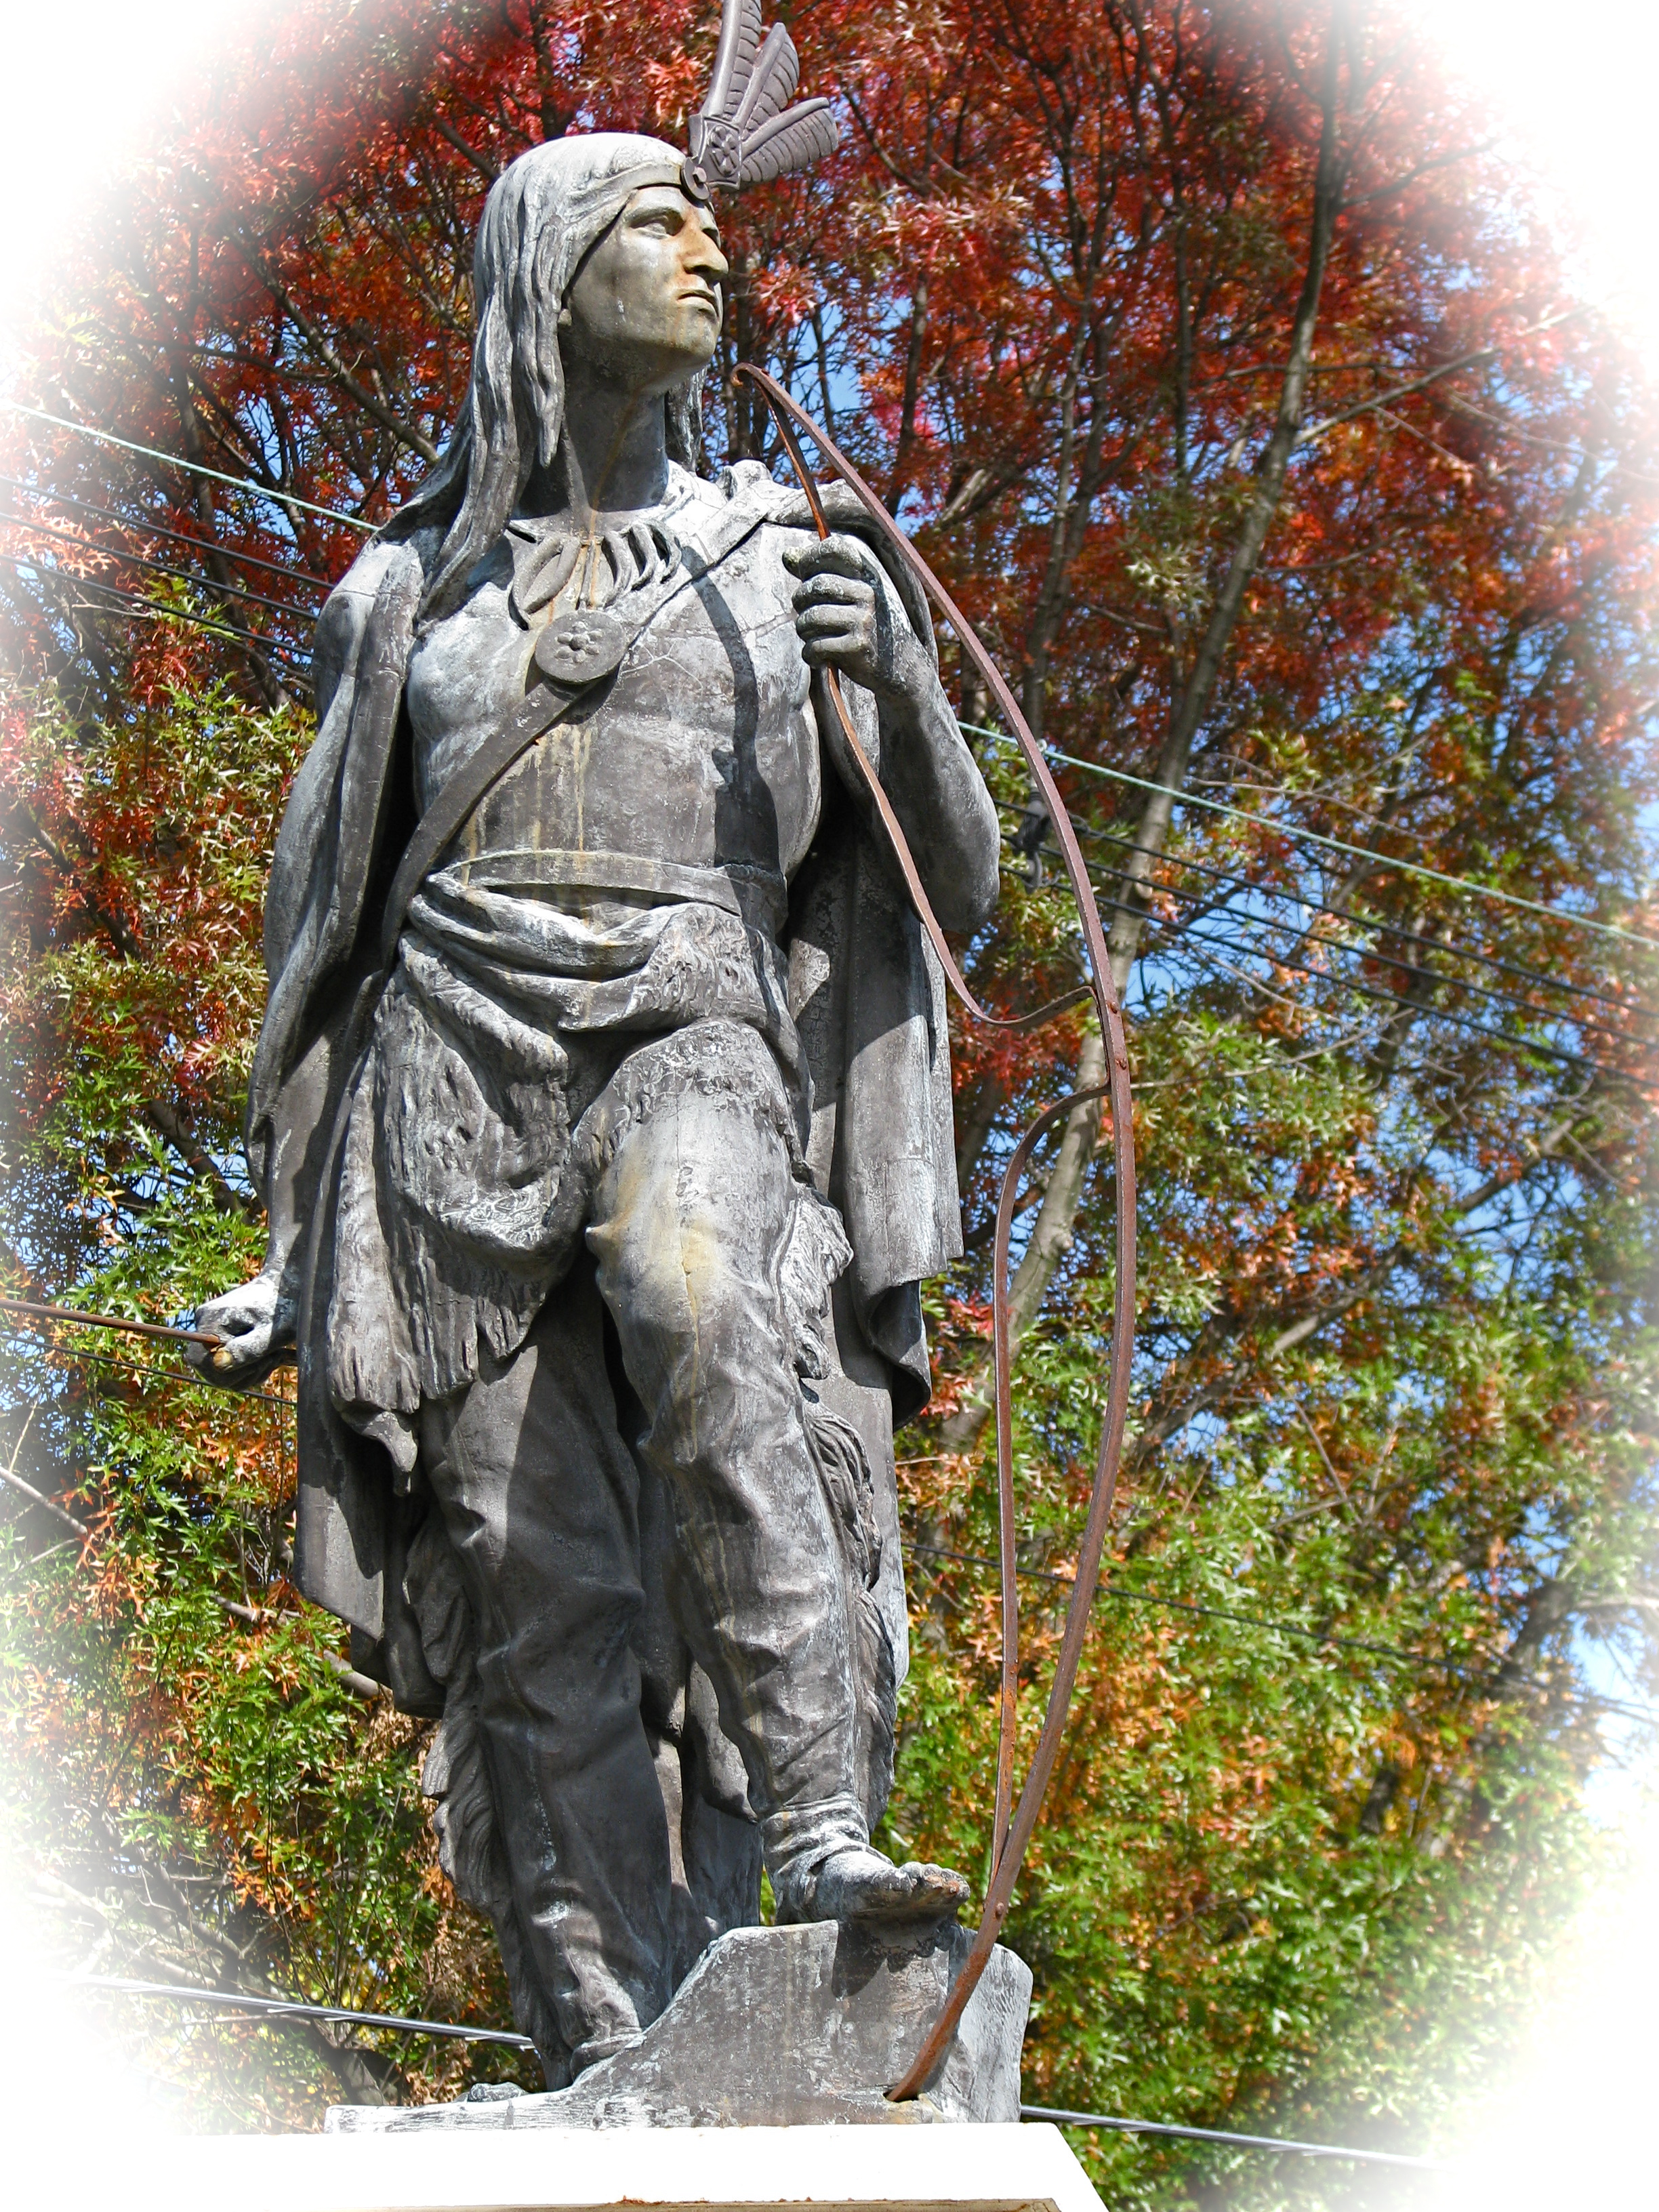 Lawrence the Indian, Schenectady Stockade Historic District - Oct. 16, 2009